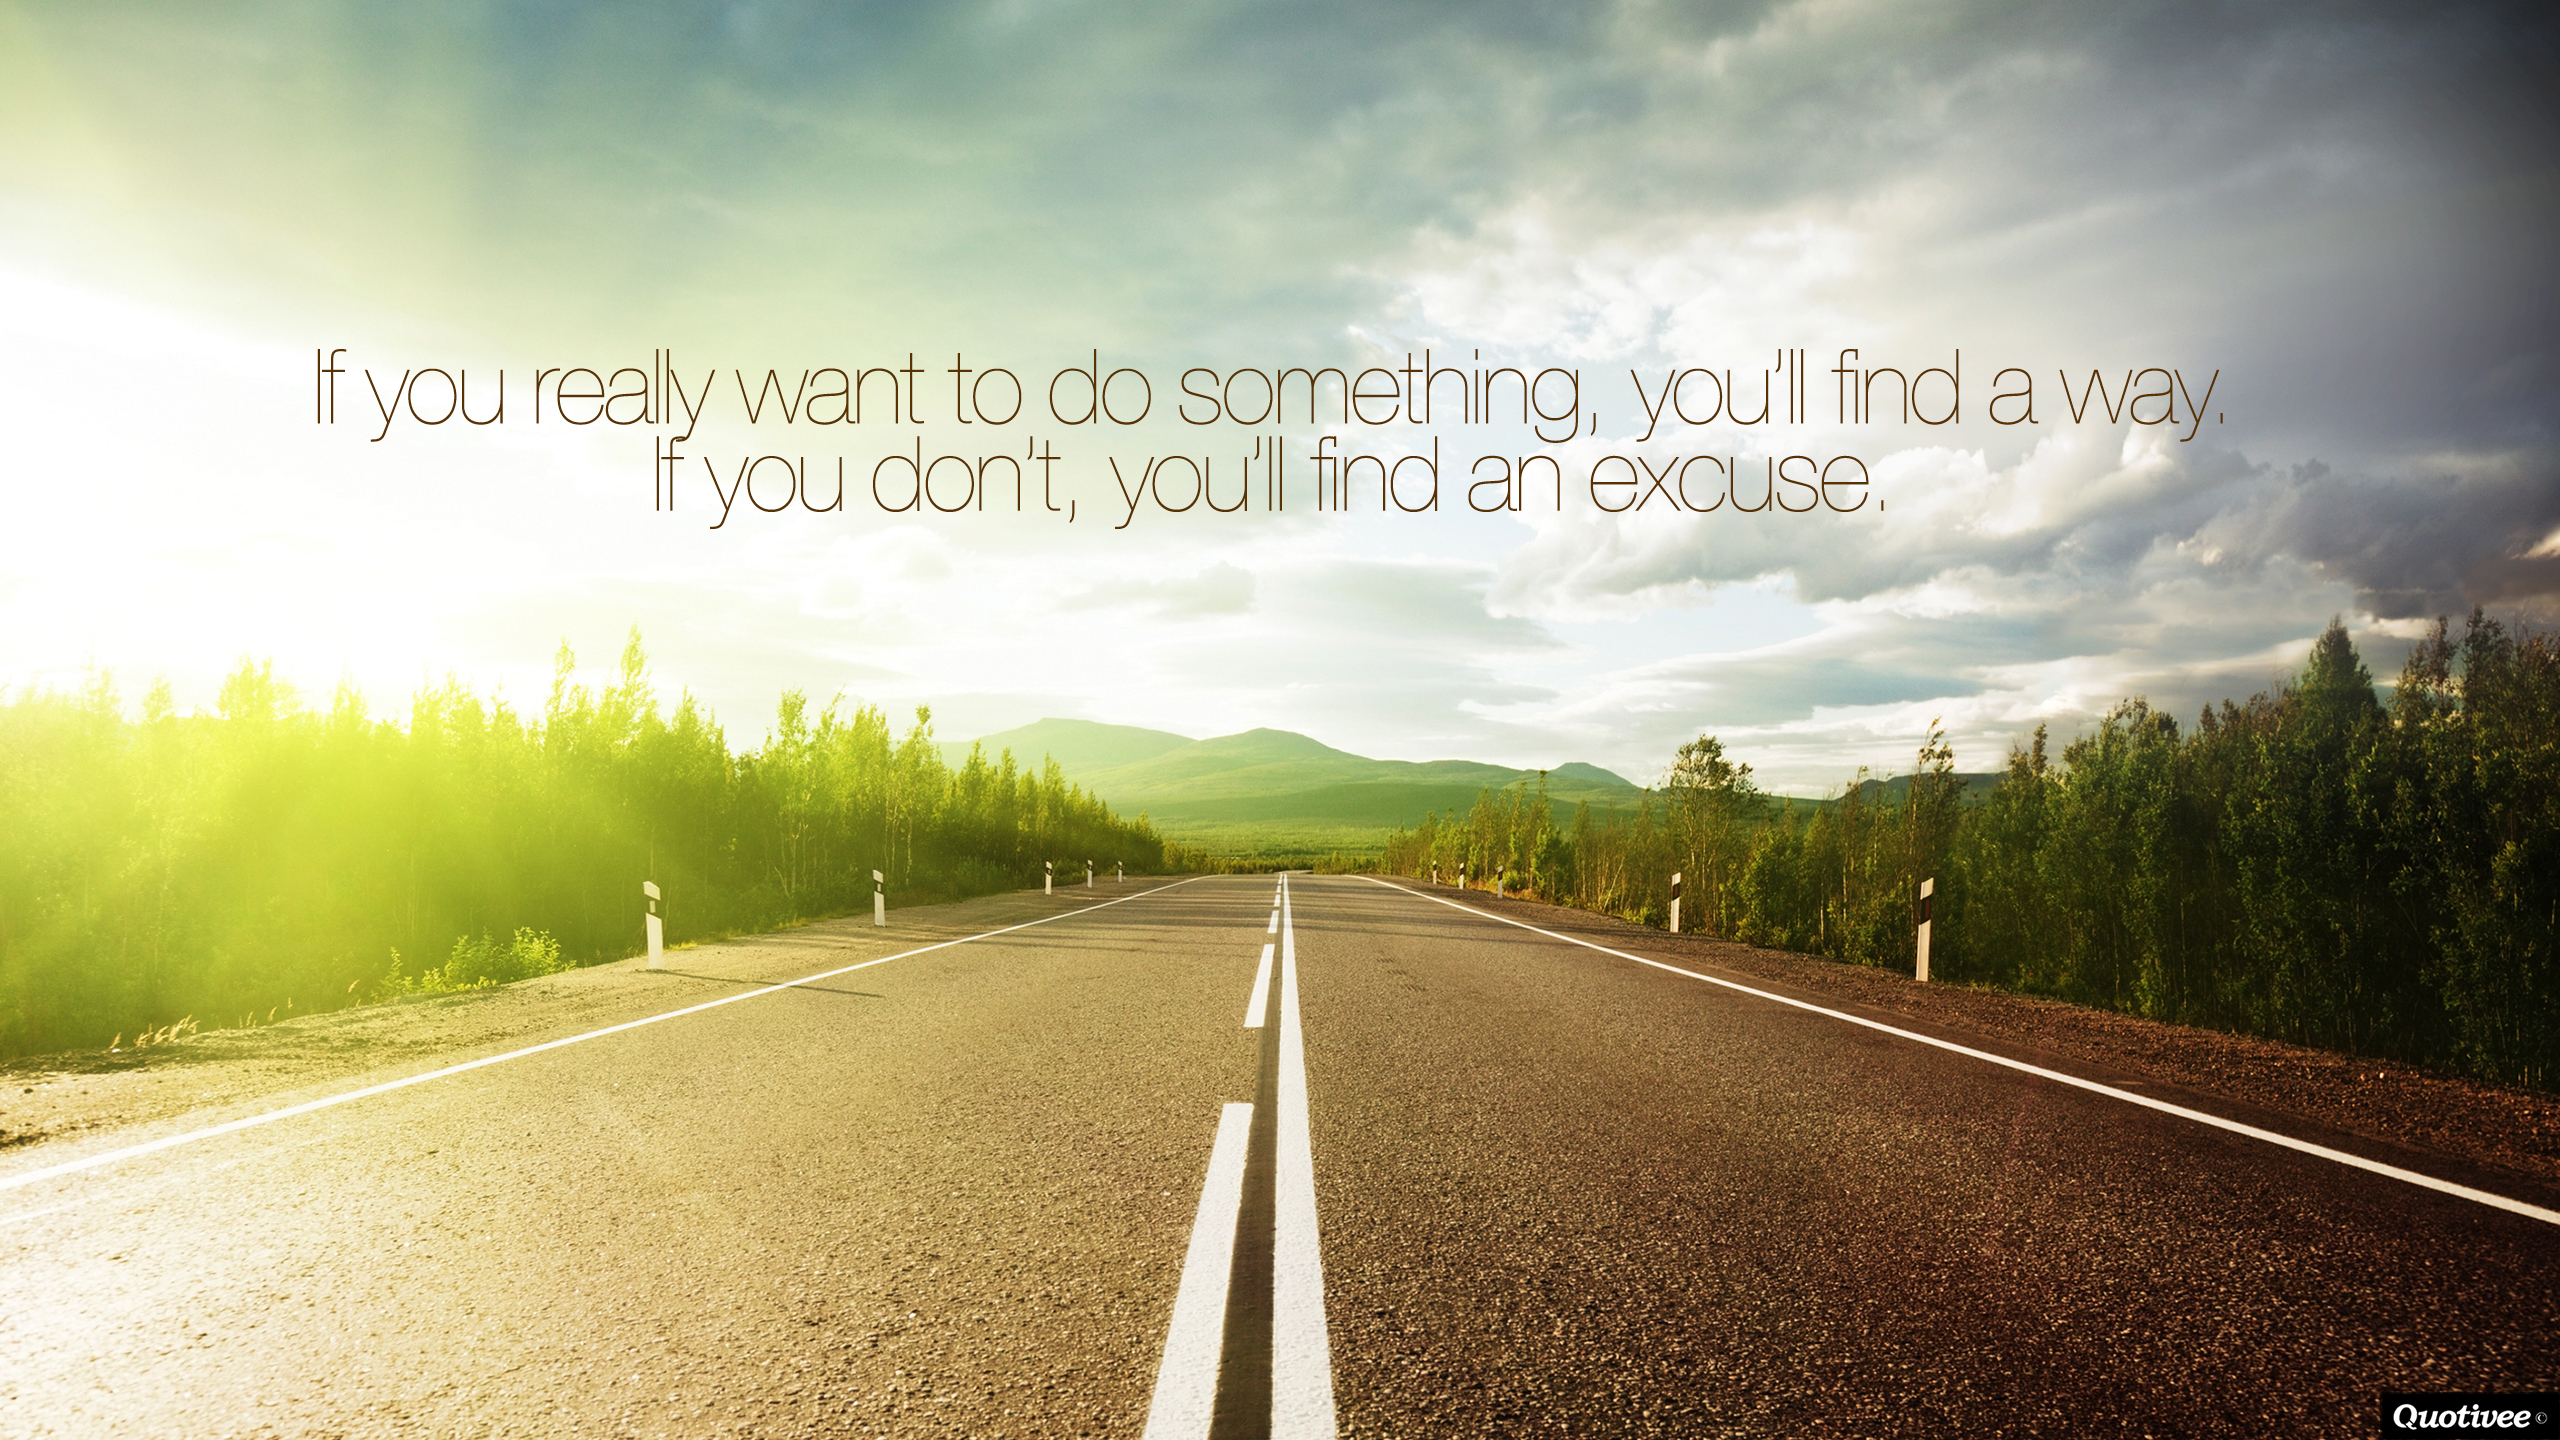 Find a way inspirational quotes quotivee for Where to find wallpaper